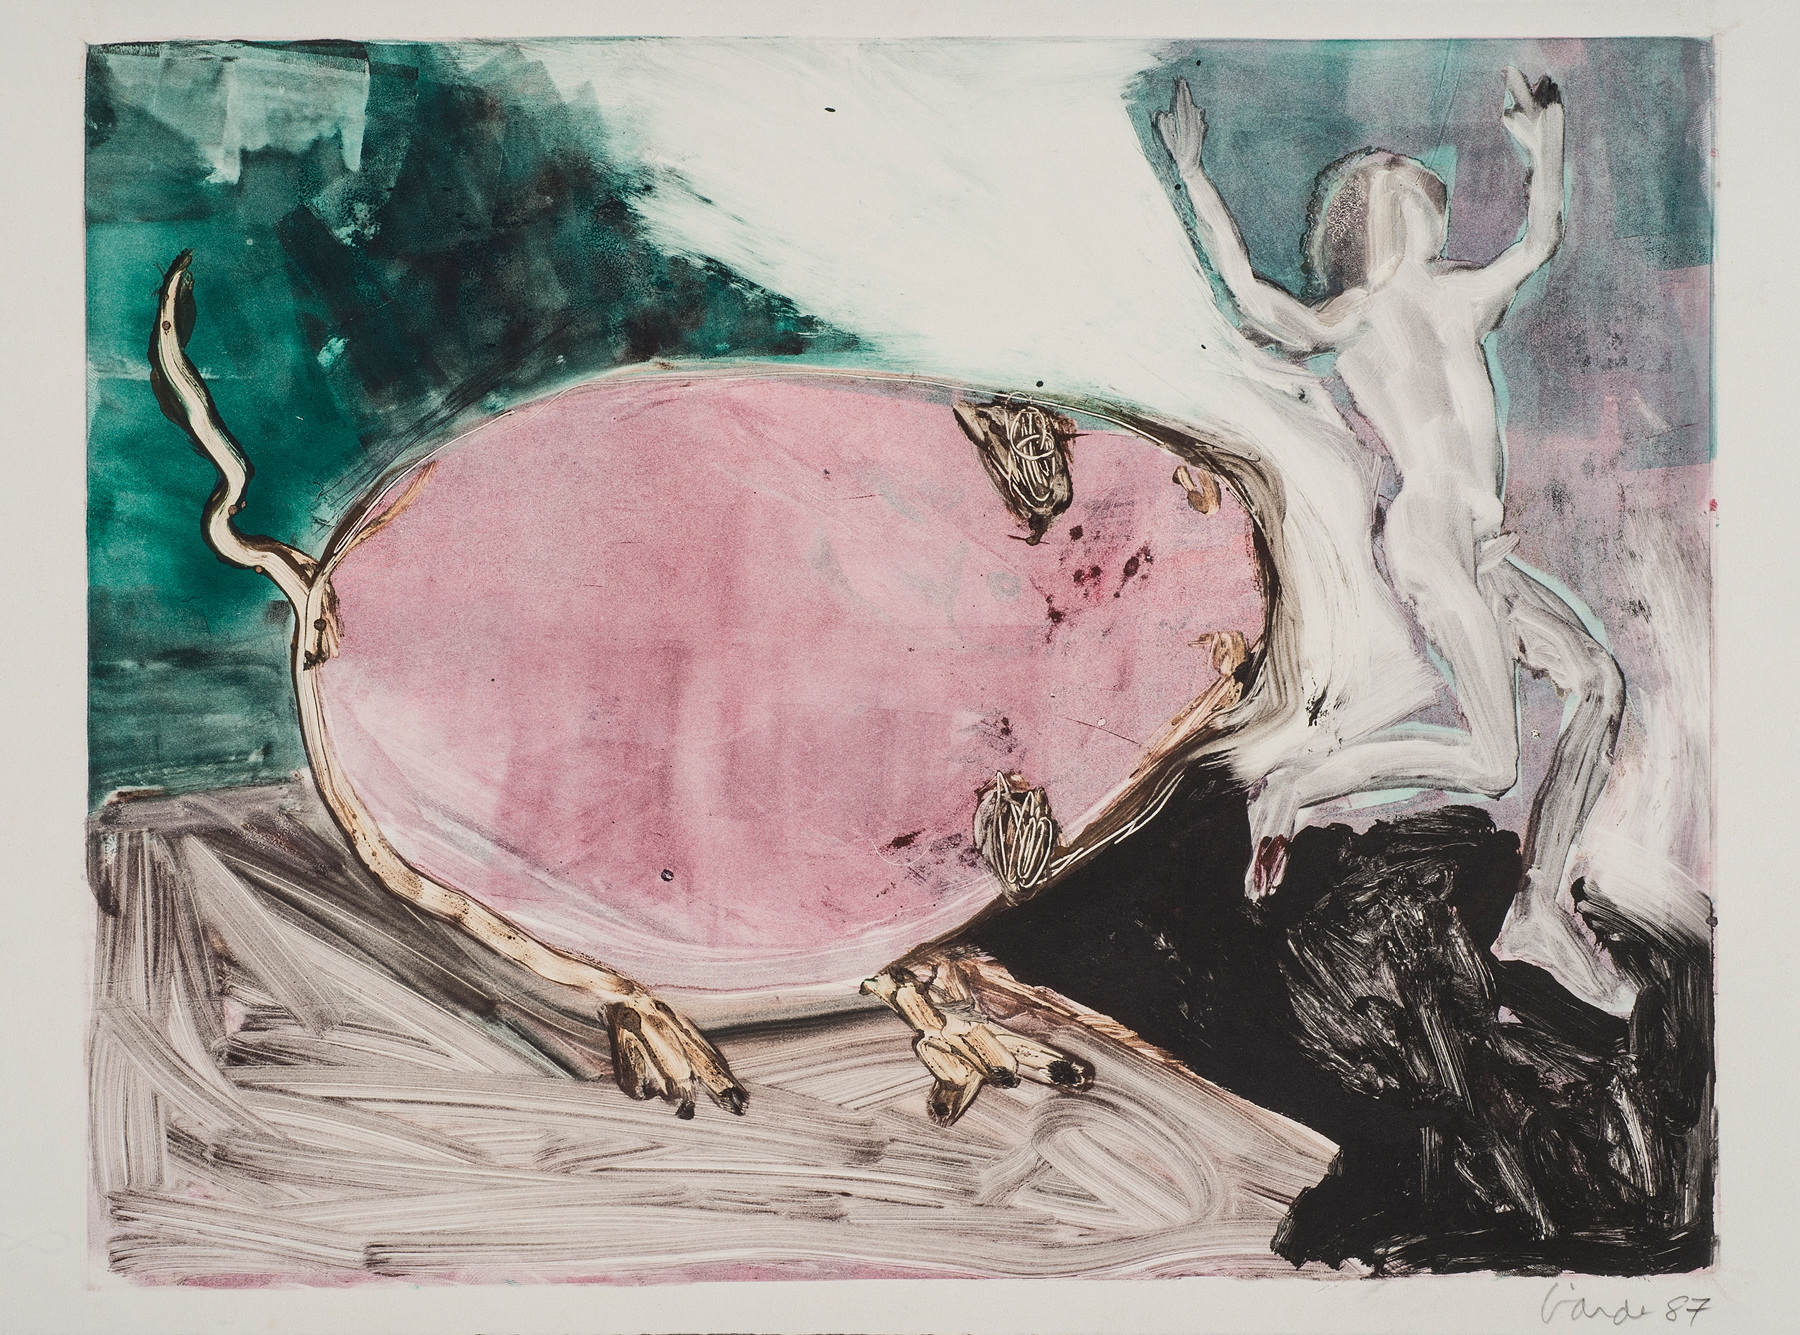 Untitled , 1987. Monotype on paper, 13.5 x 19 in. (34 x 48 cm.)